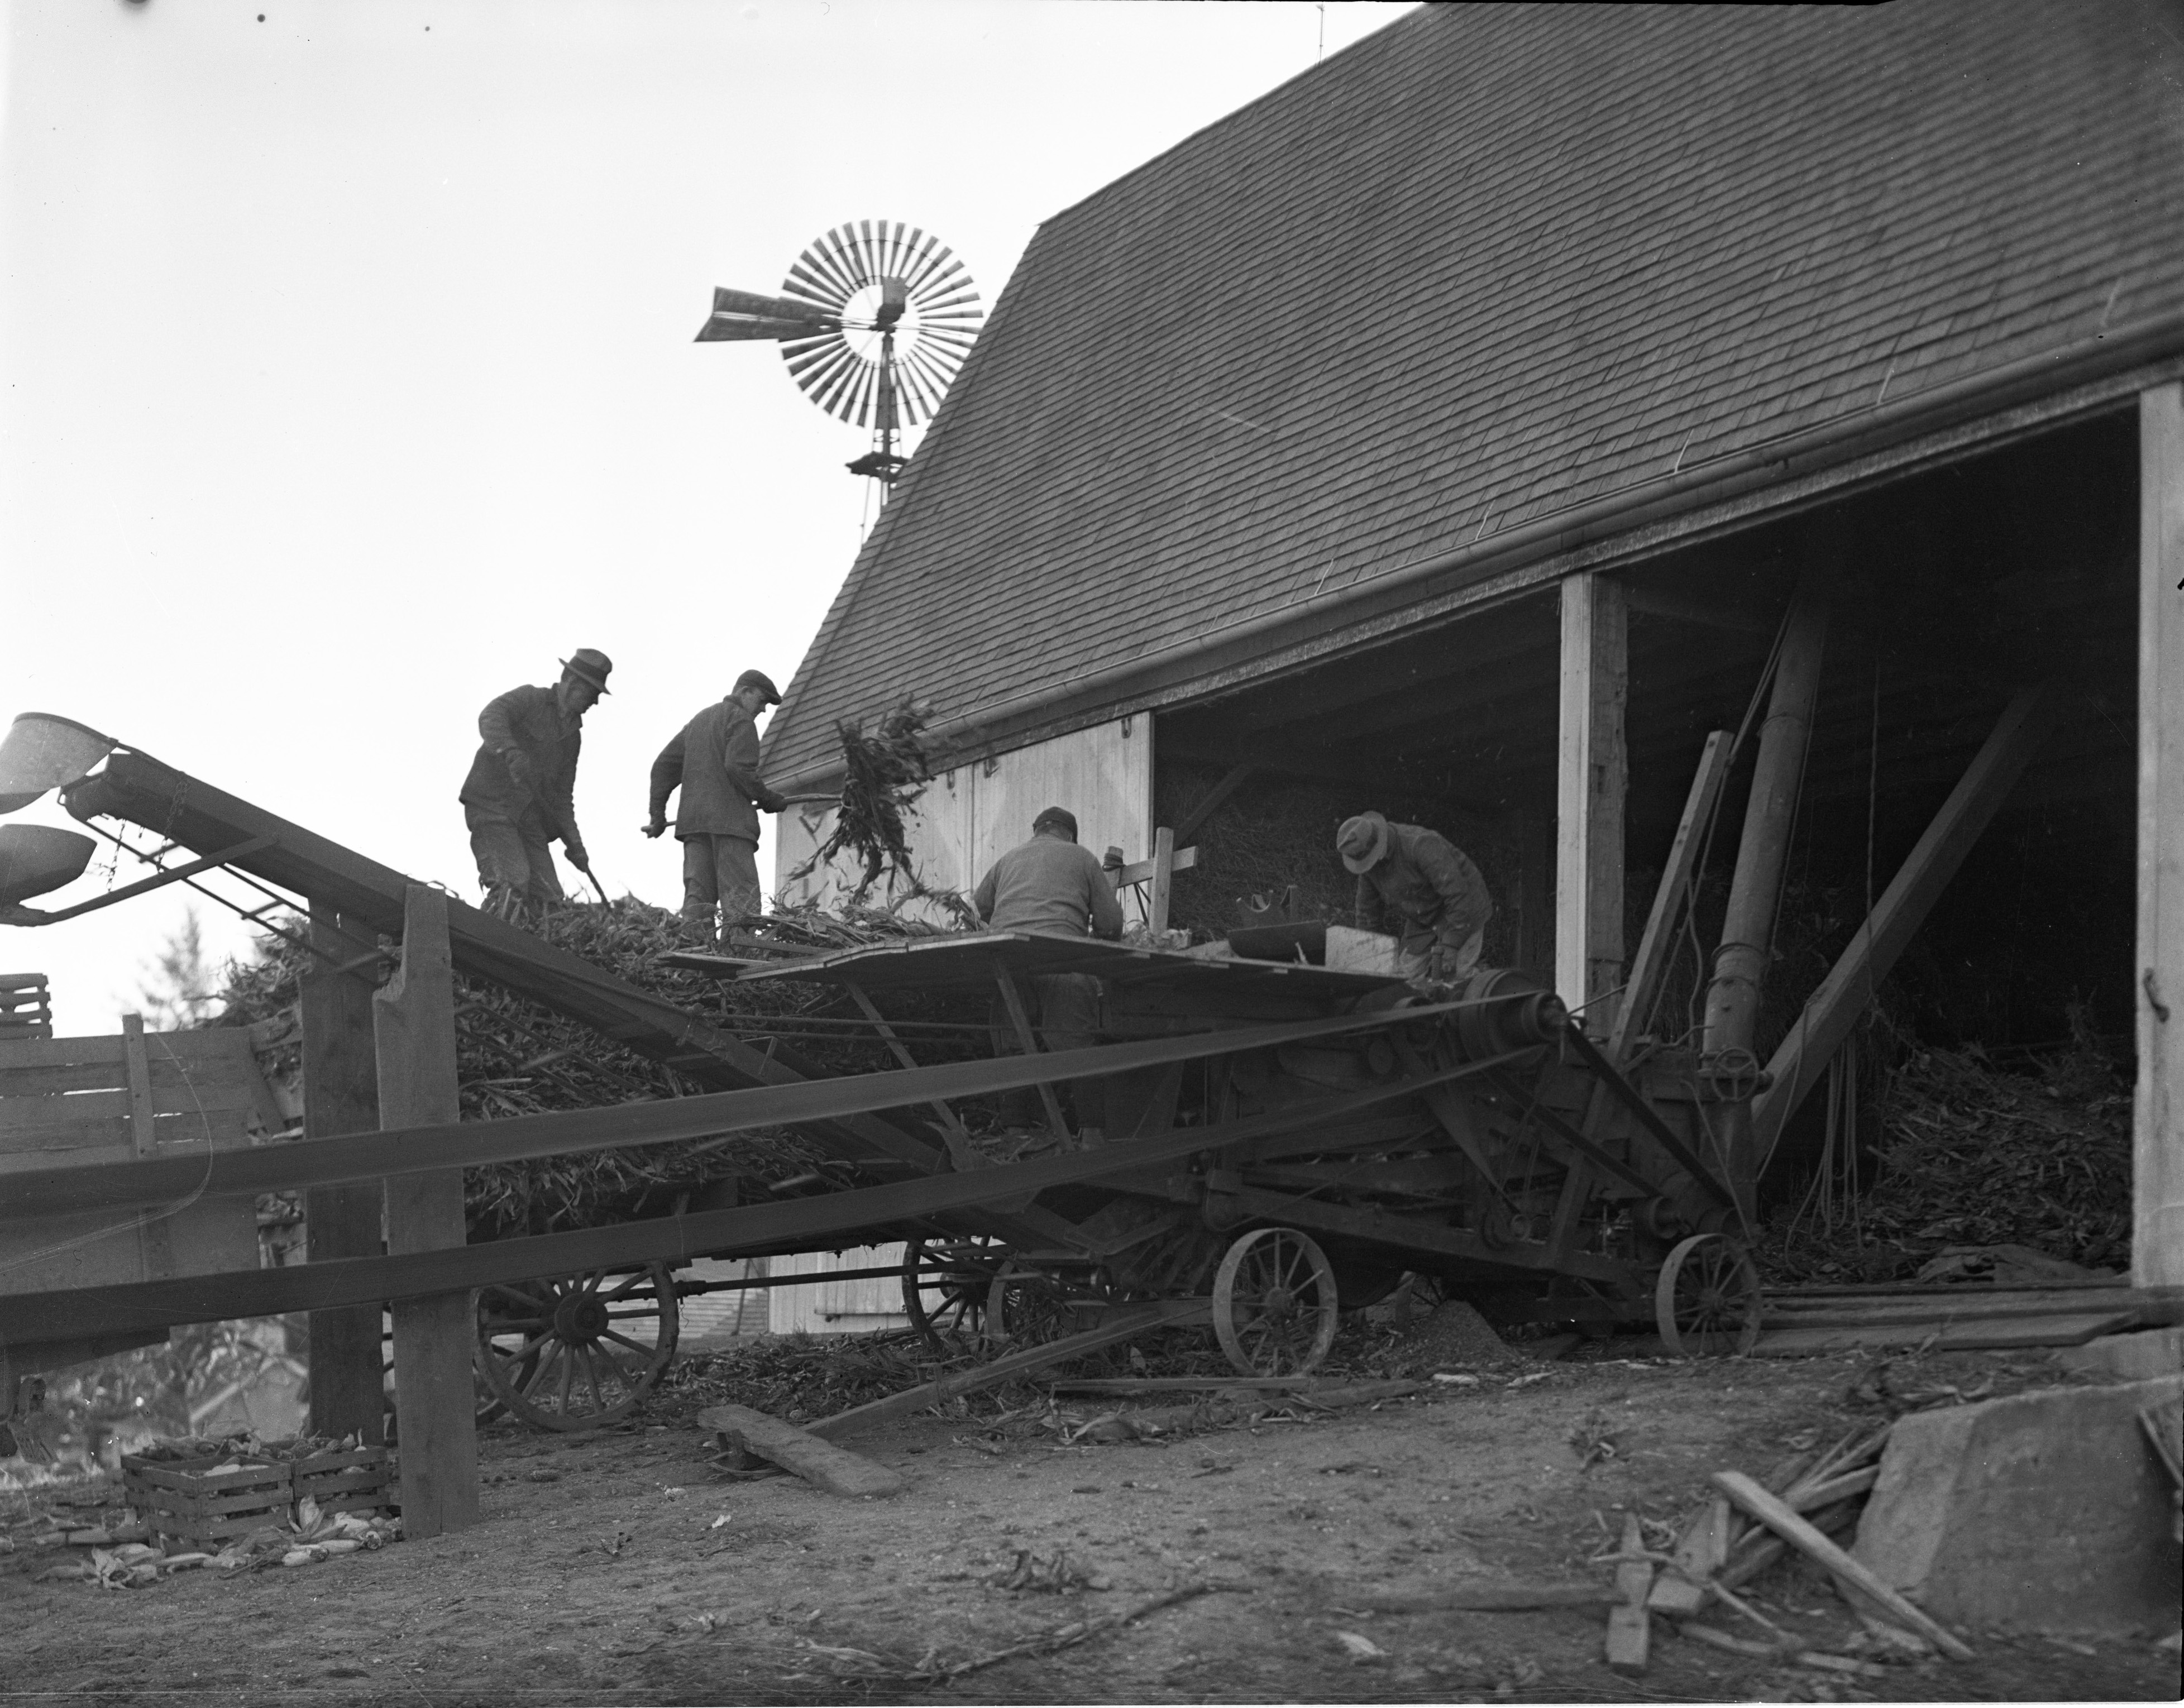 Corn Shredding On The Aprill Farm, November 1936 image